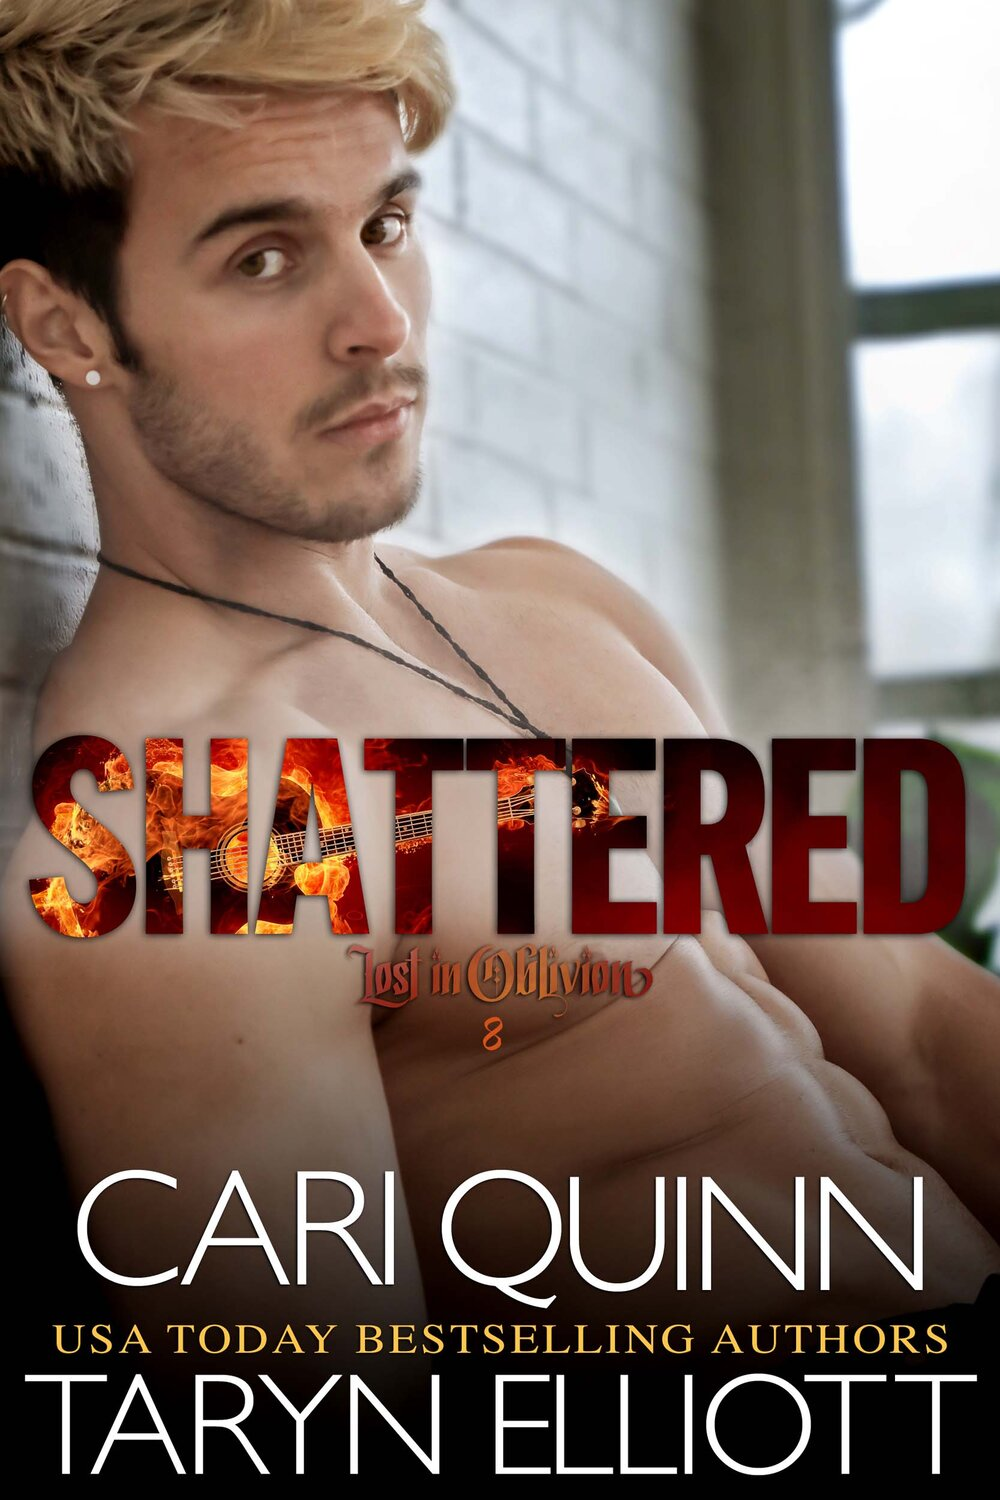 Cari Quinn Shattered Lost in Oblivion 4.jpg